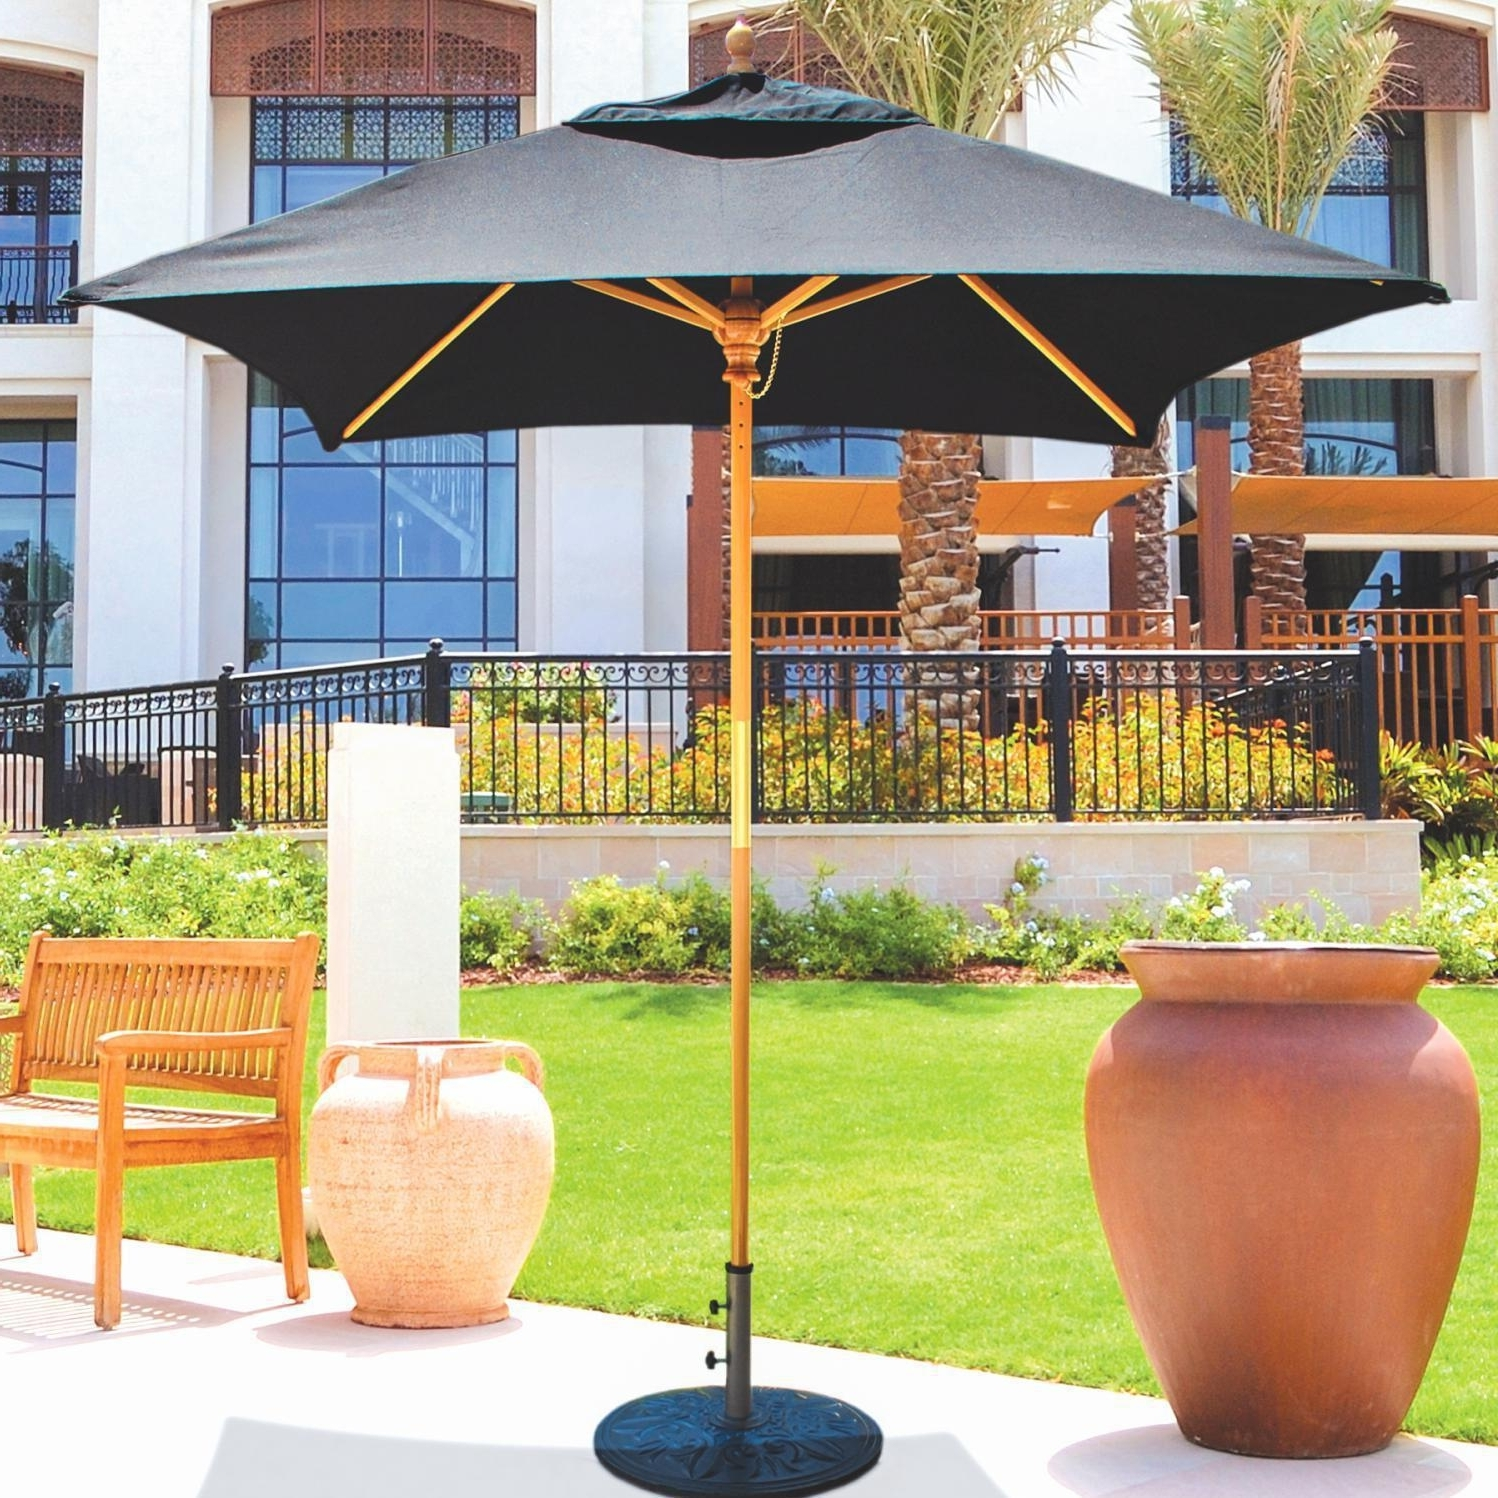 Current 6 Ft Patio Umbrellas Regarding Galtech 6 Ft Wood Square Patio Umbrella With Manual Lift – Light (View 8 of 20)